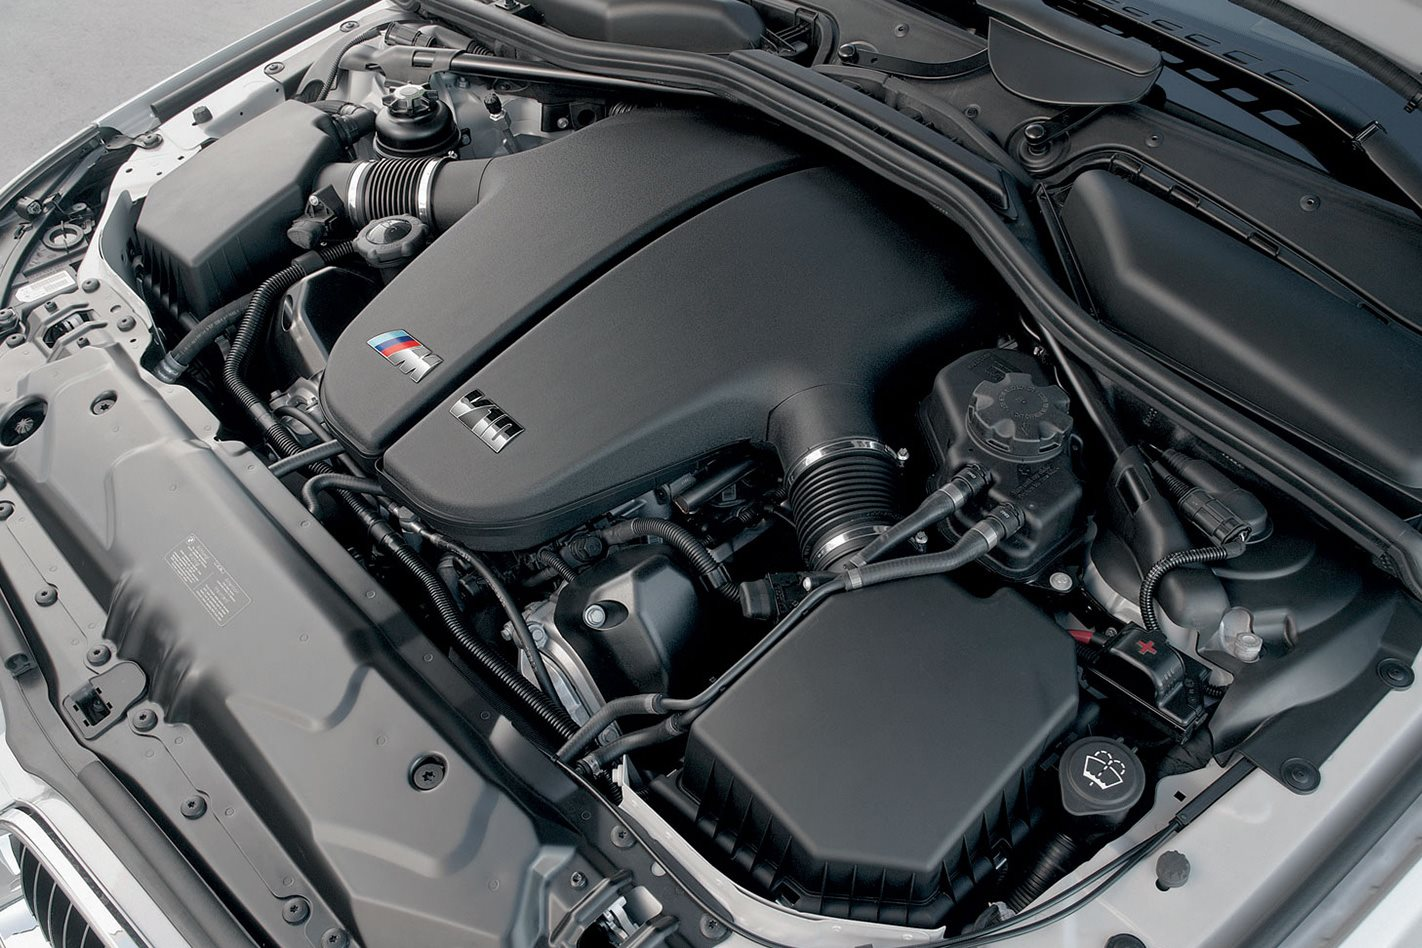 2005 E60 BMW M5 engine